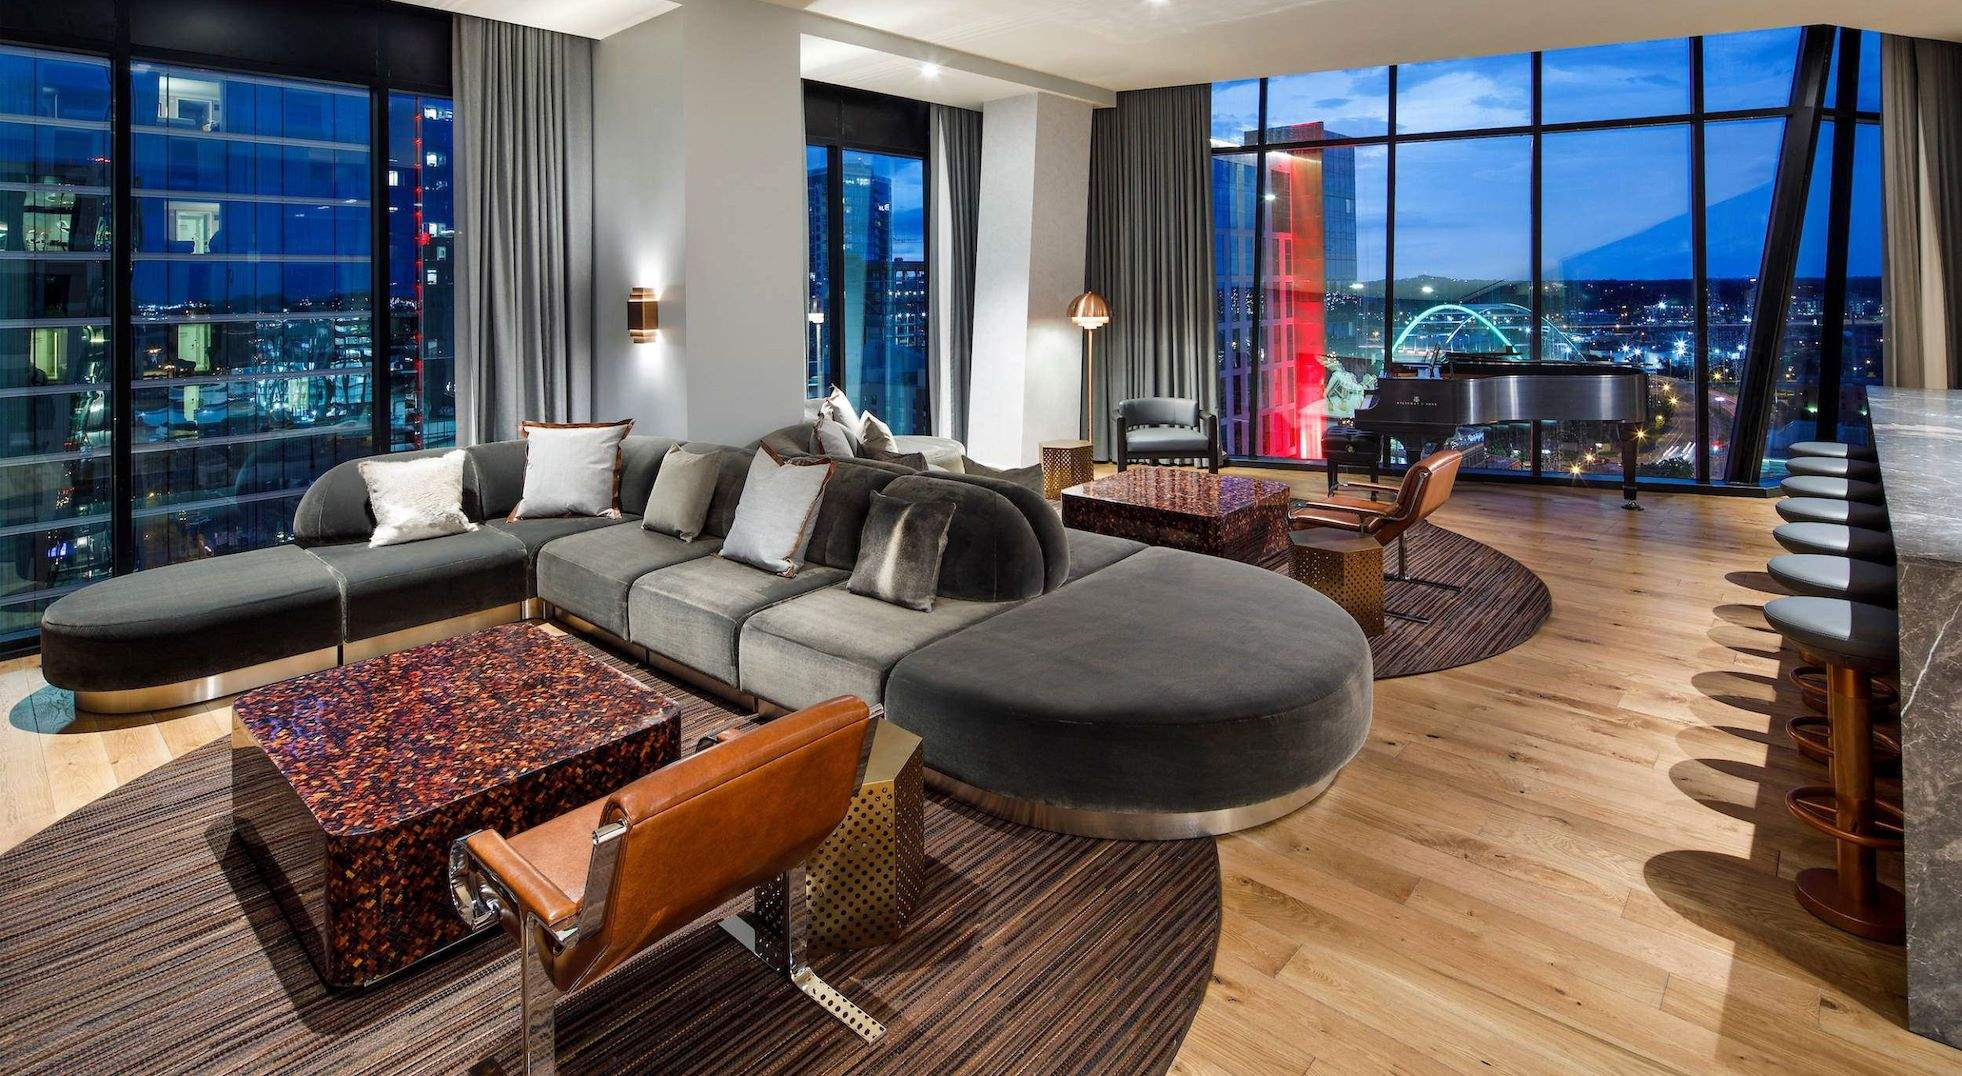 The Joseph Hotel, Nashville offers Presidential Suite